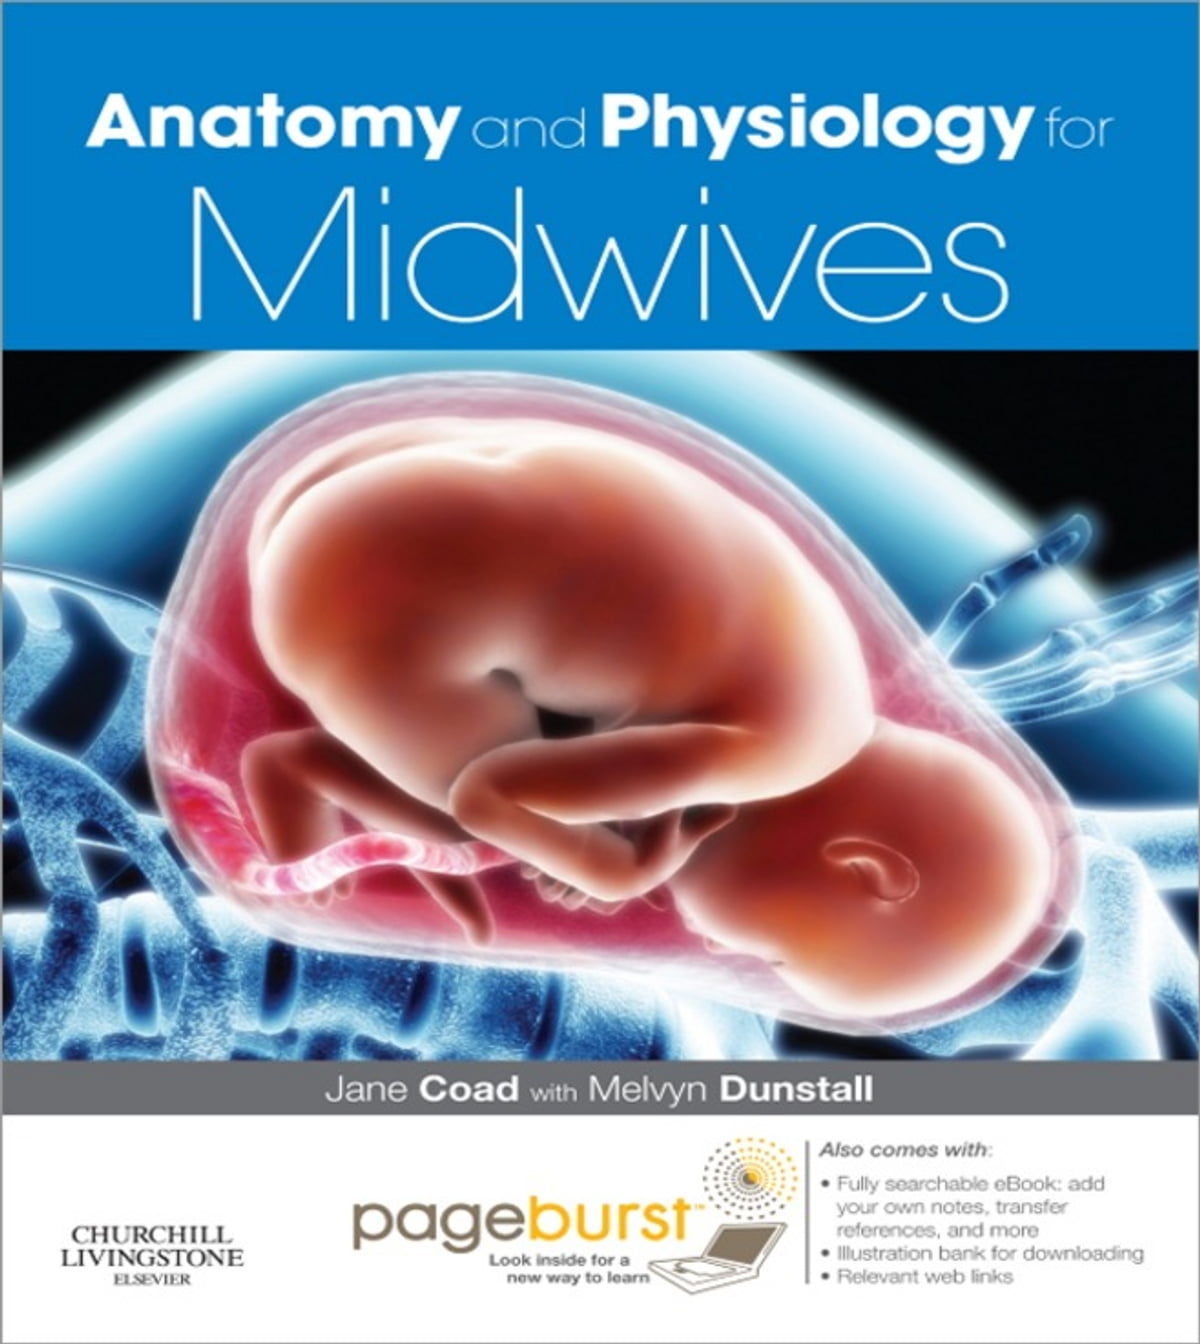 Anatomy and Physiology for Midwives eBook by Jane Coad ...